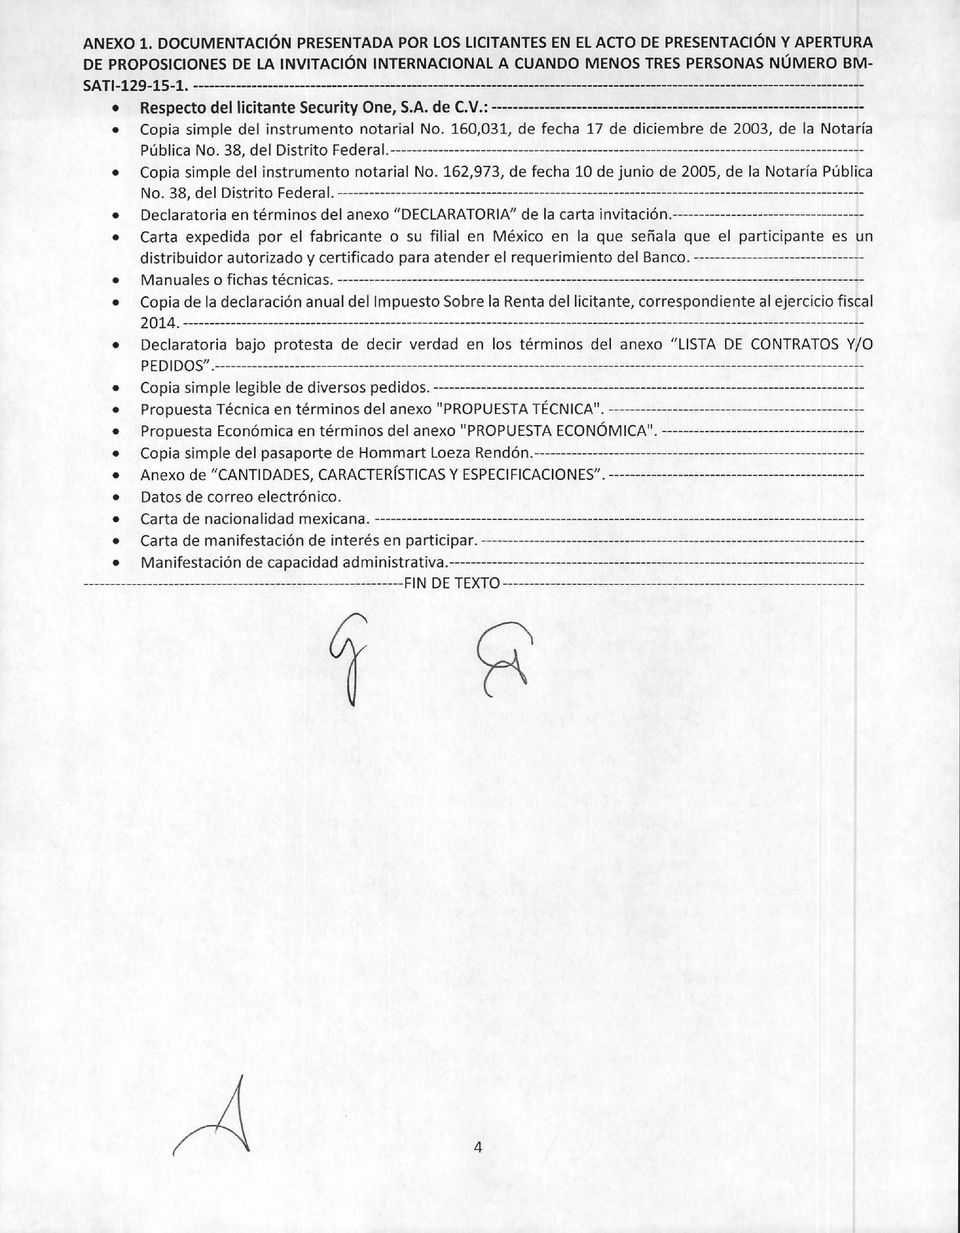 Copia simple del instrumento notarial No. 162,973, de fecha 10 de junio de 2005, de la Notaría Pública No. 38, del Distrito Federal.